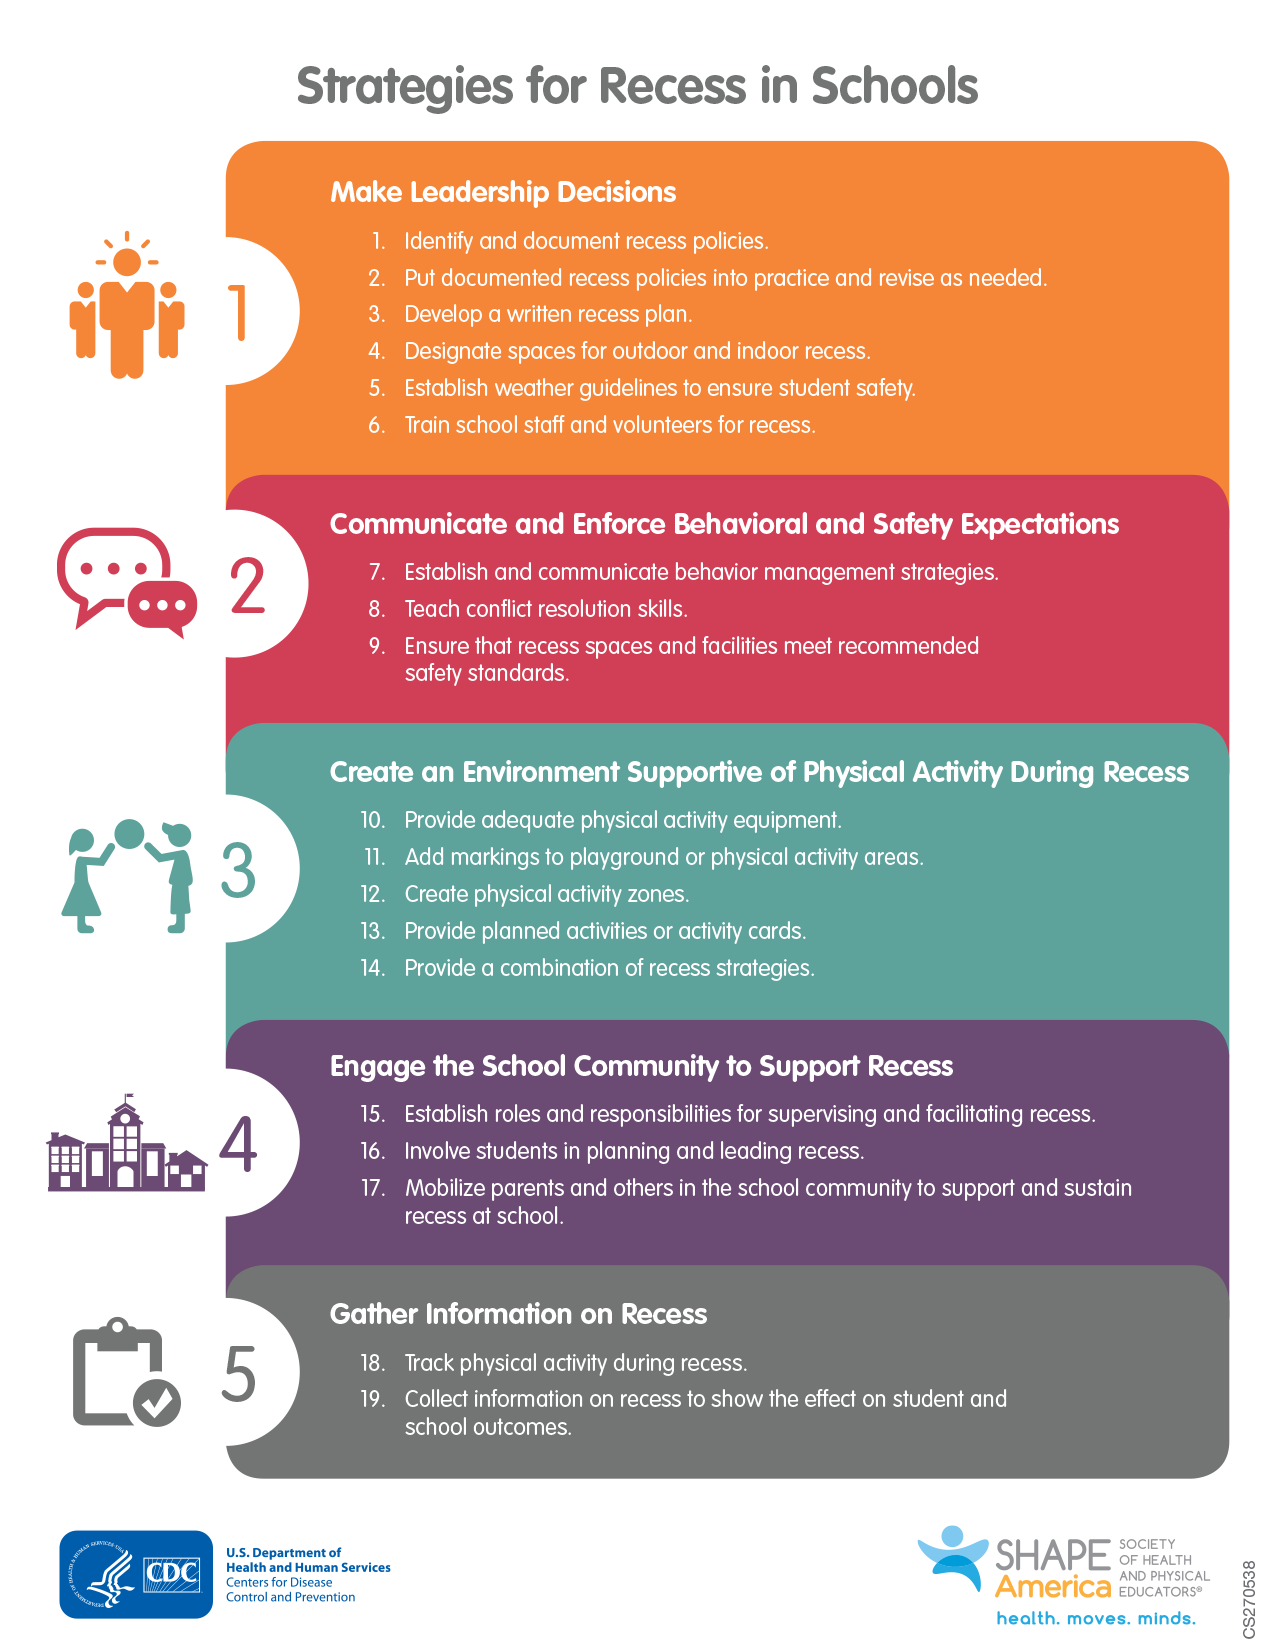 CDC and SHAPE America's Strategies for Recess in Schools